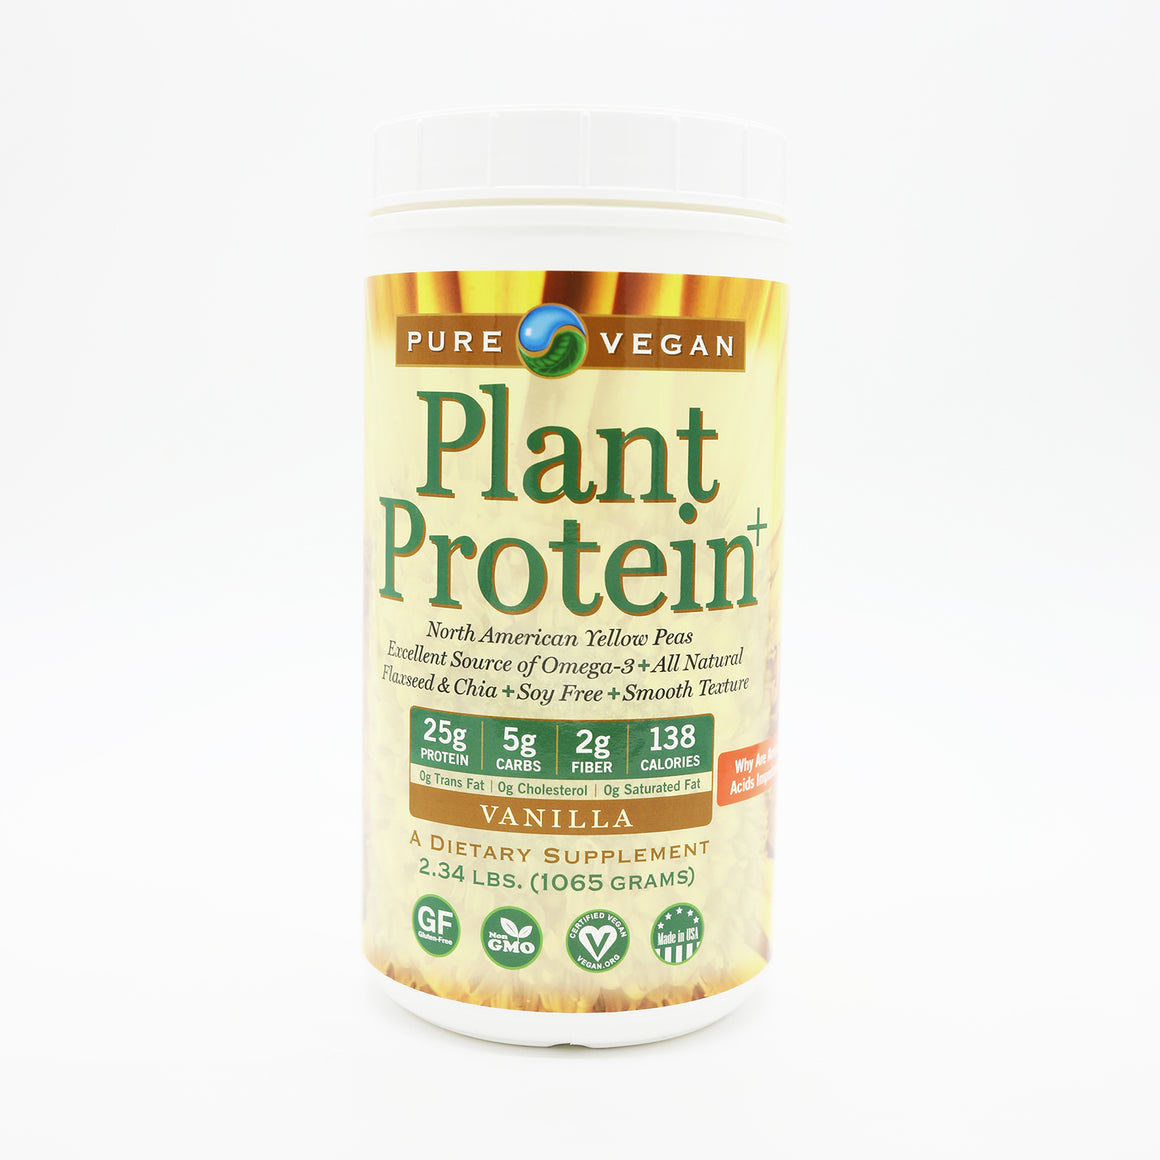 Pure Vegan Plant Protein + Flax and Chia